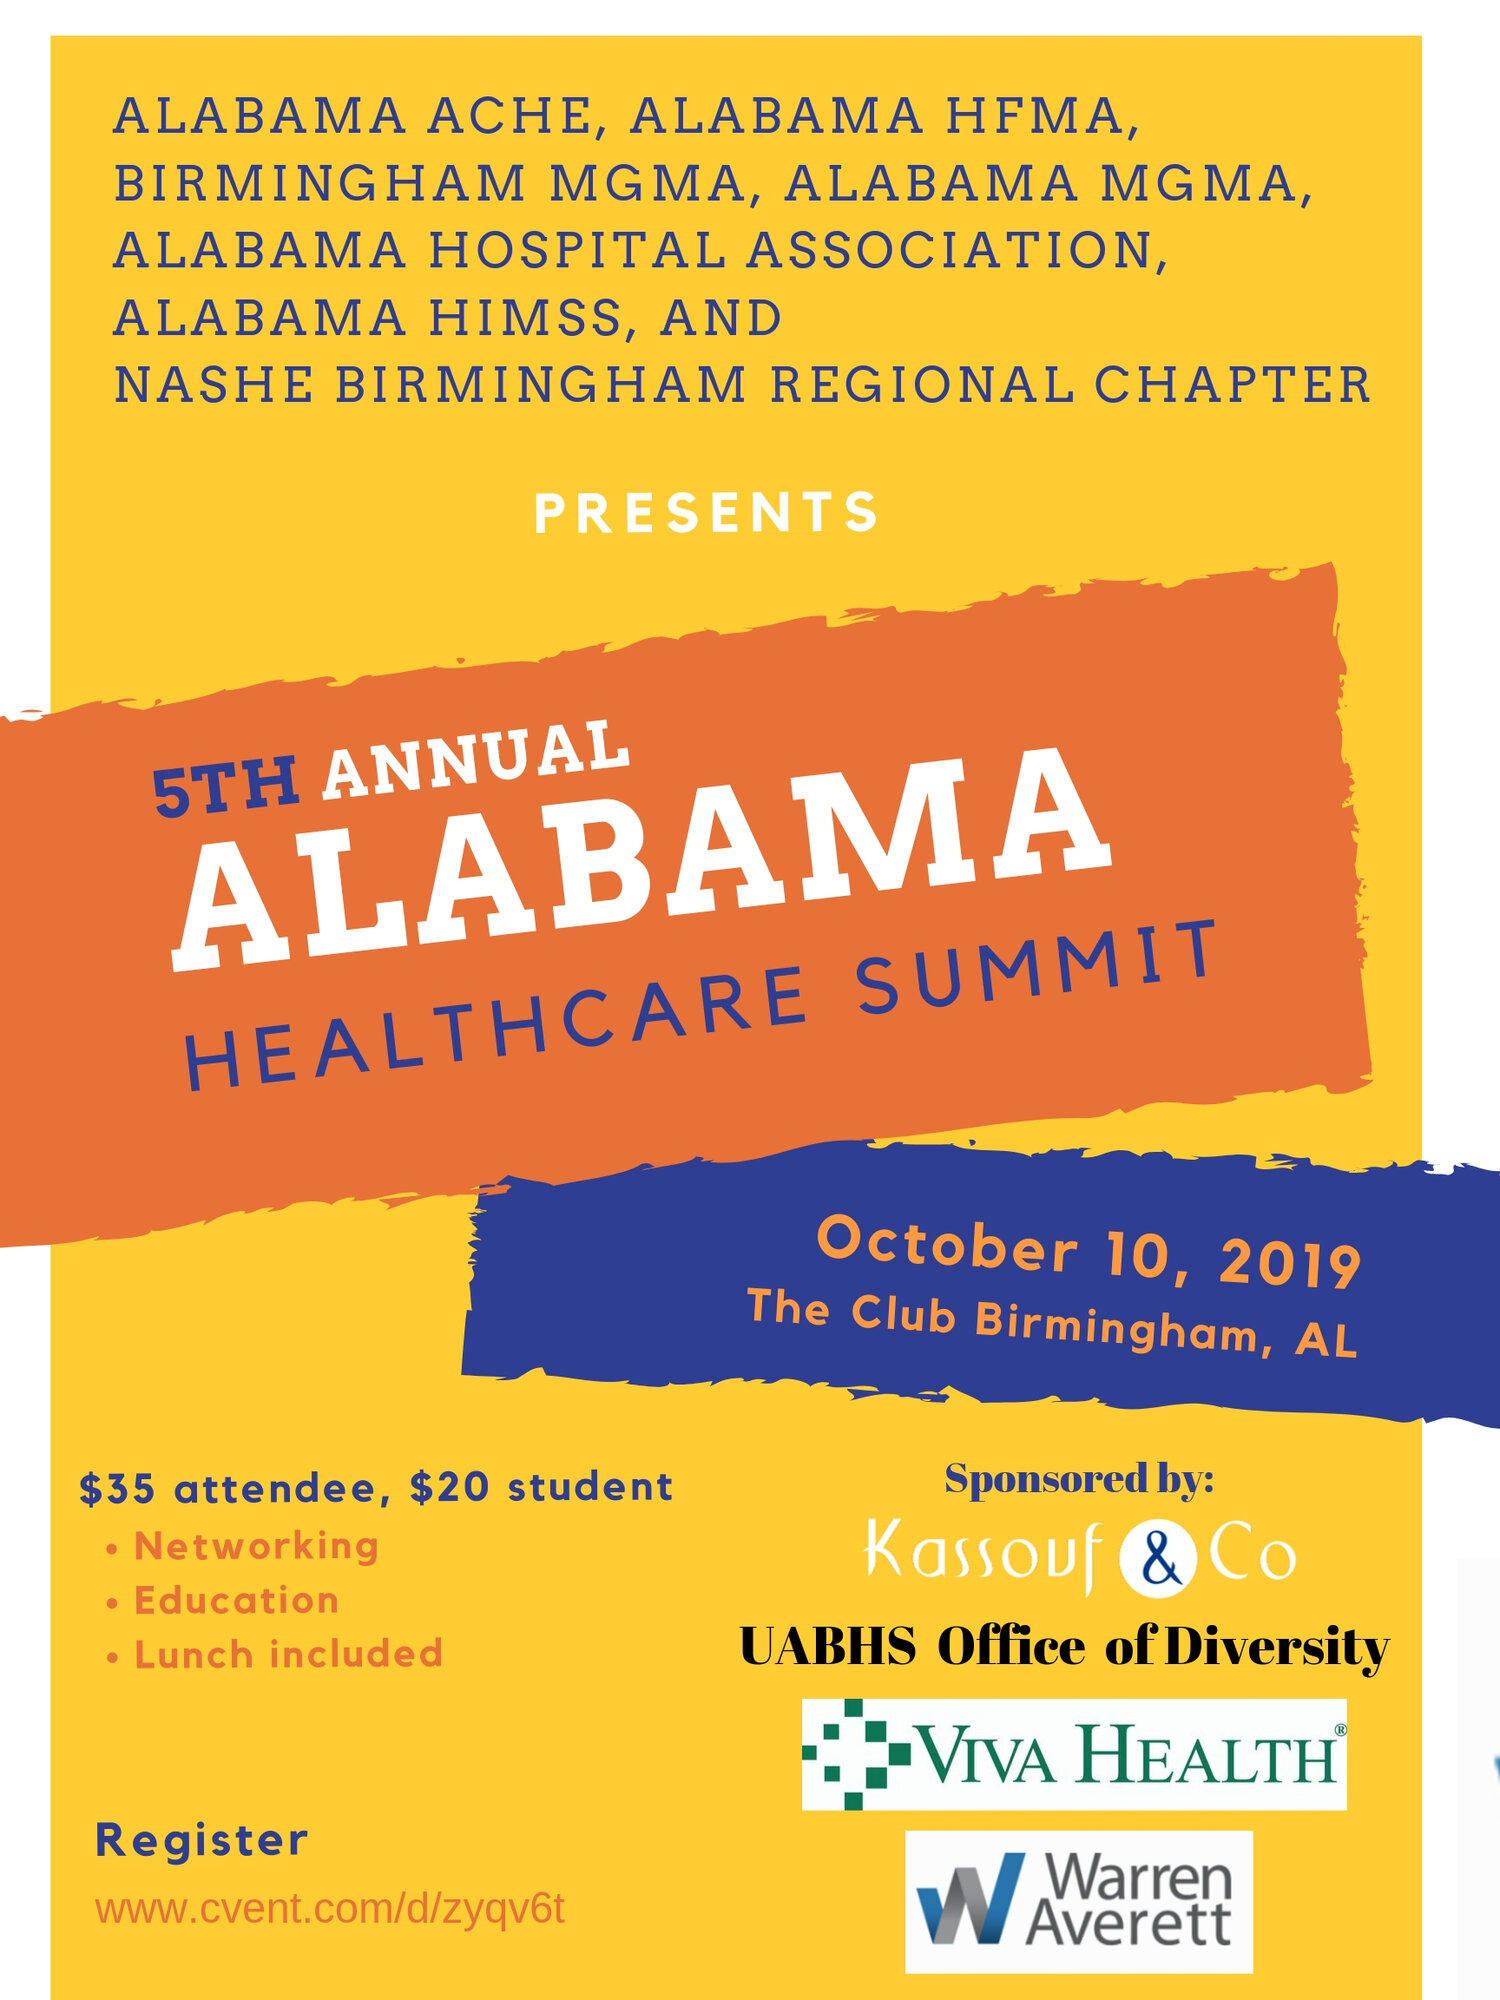 5th Annual Healthcare Summit Poster.jpg